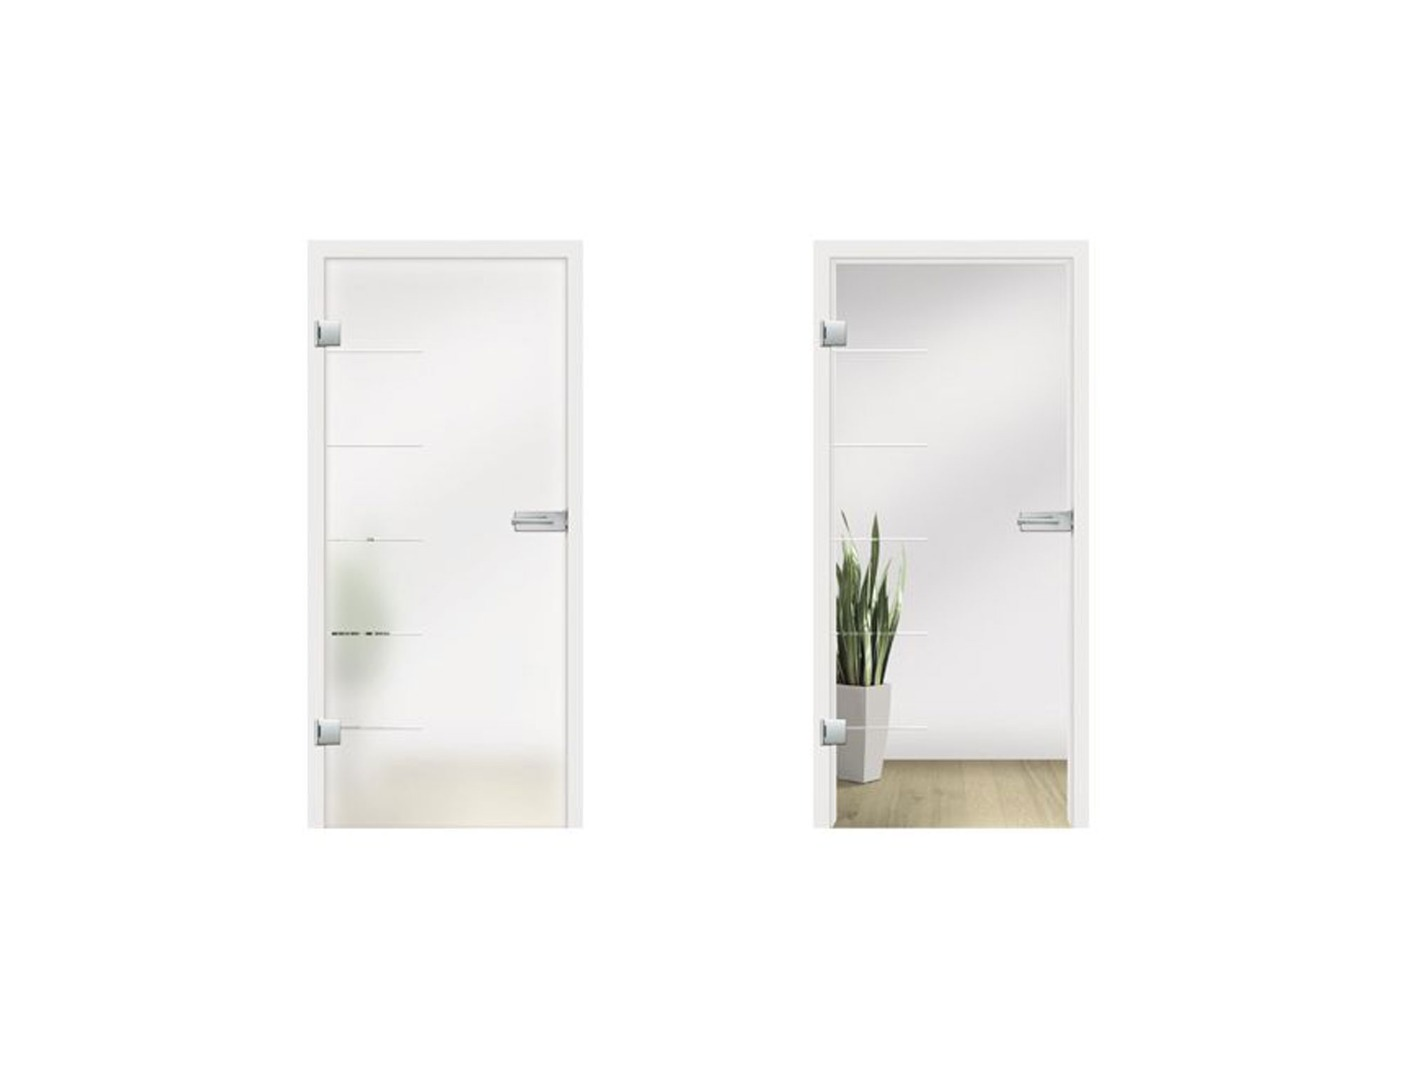 Cinque Type 845 Grooved Glass Door Design - Internal Glass Door